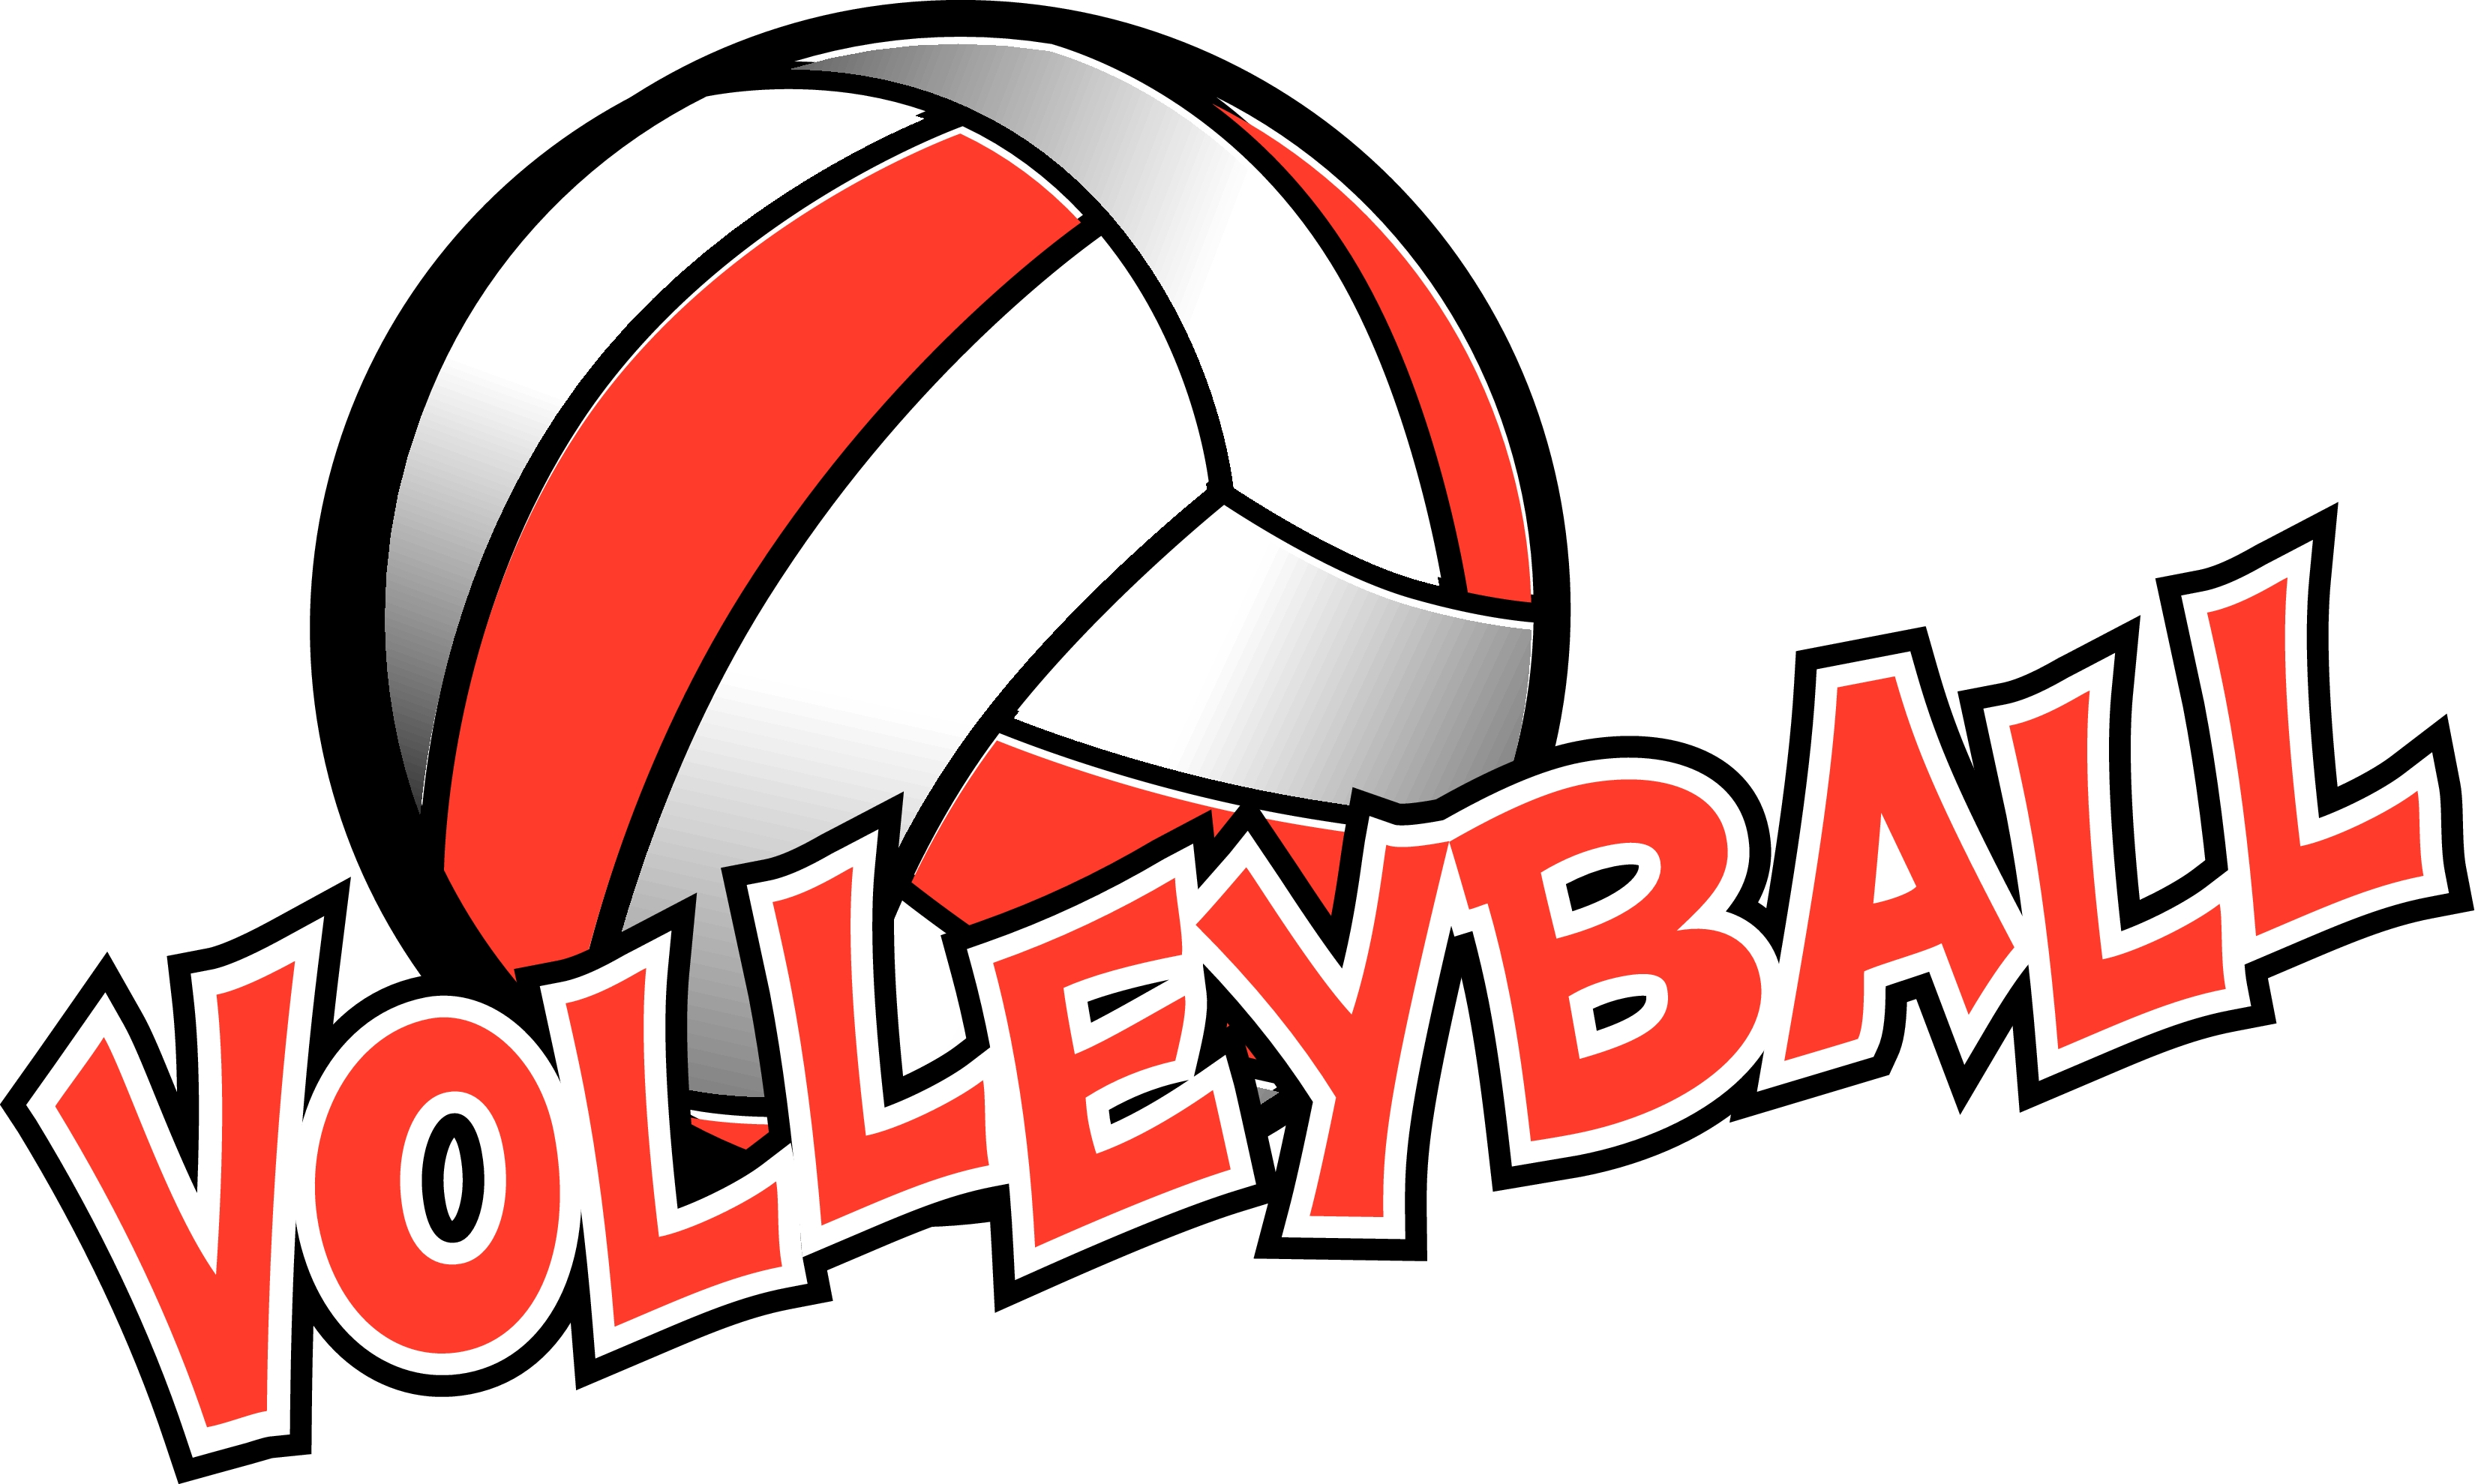 Love Volleyball Word Clipart.